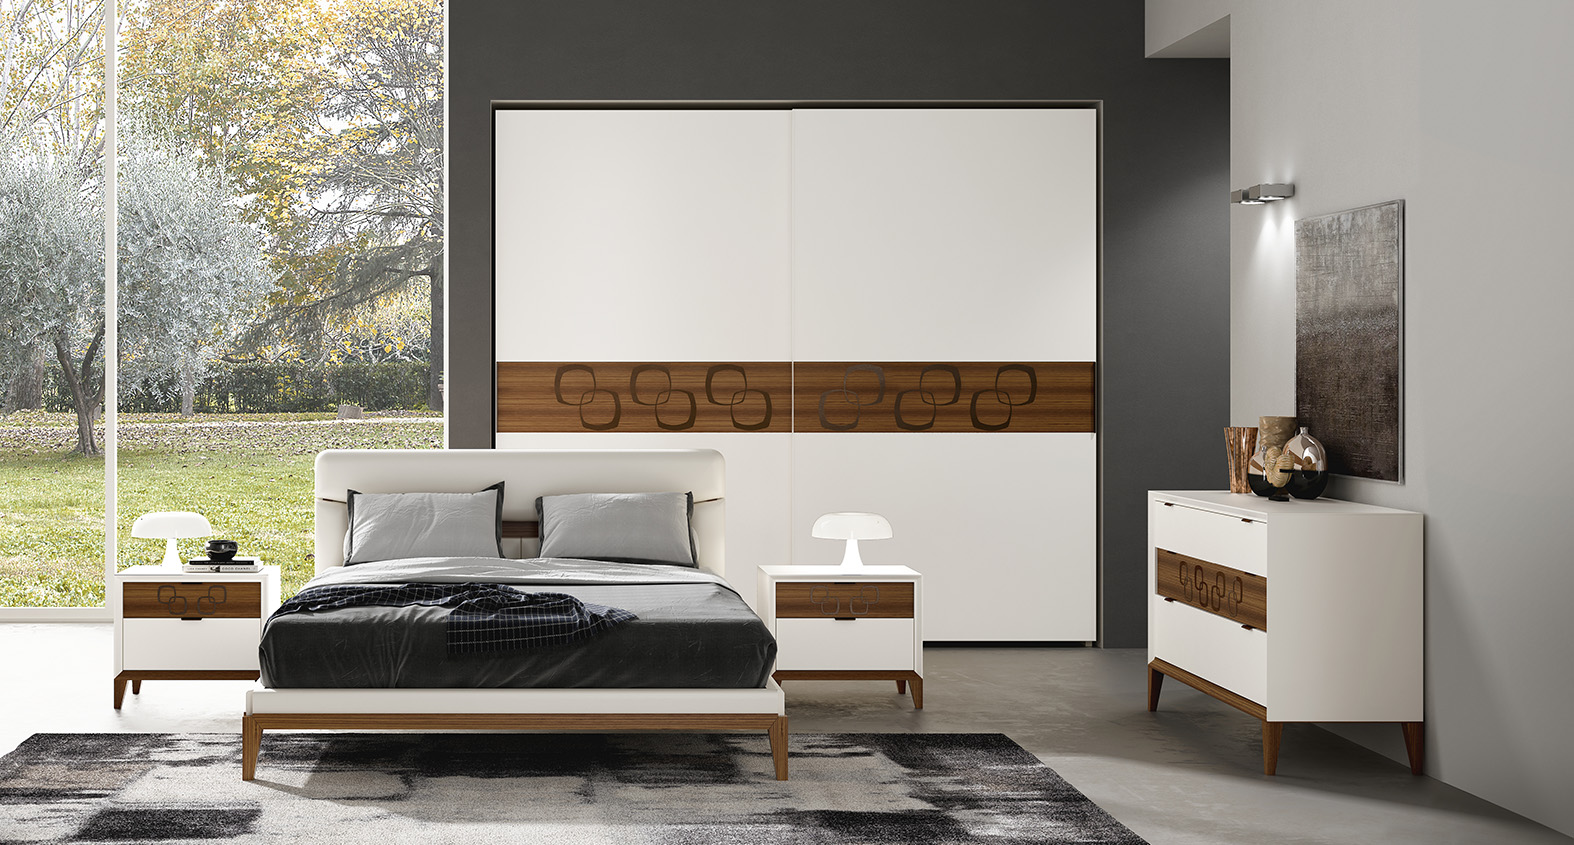 DESIGNER WALTER TURINI <br> Dresser and nightstands with 45° angle milling on the front, lacquered matt white finish (L01), drawer section in Canaletto walnut with bronze coloured metal insert.